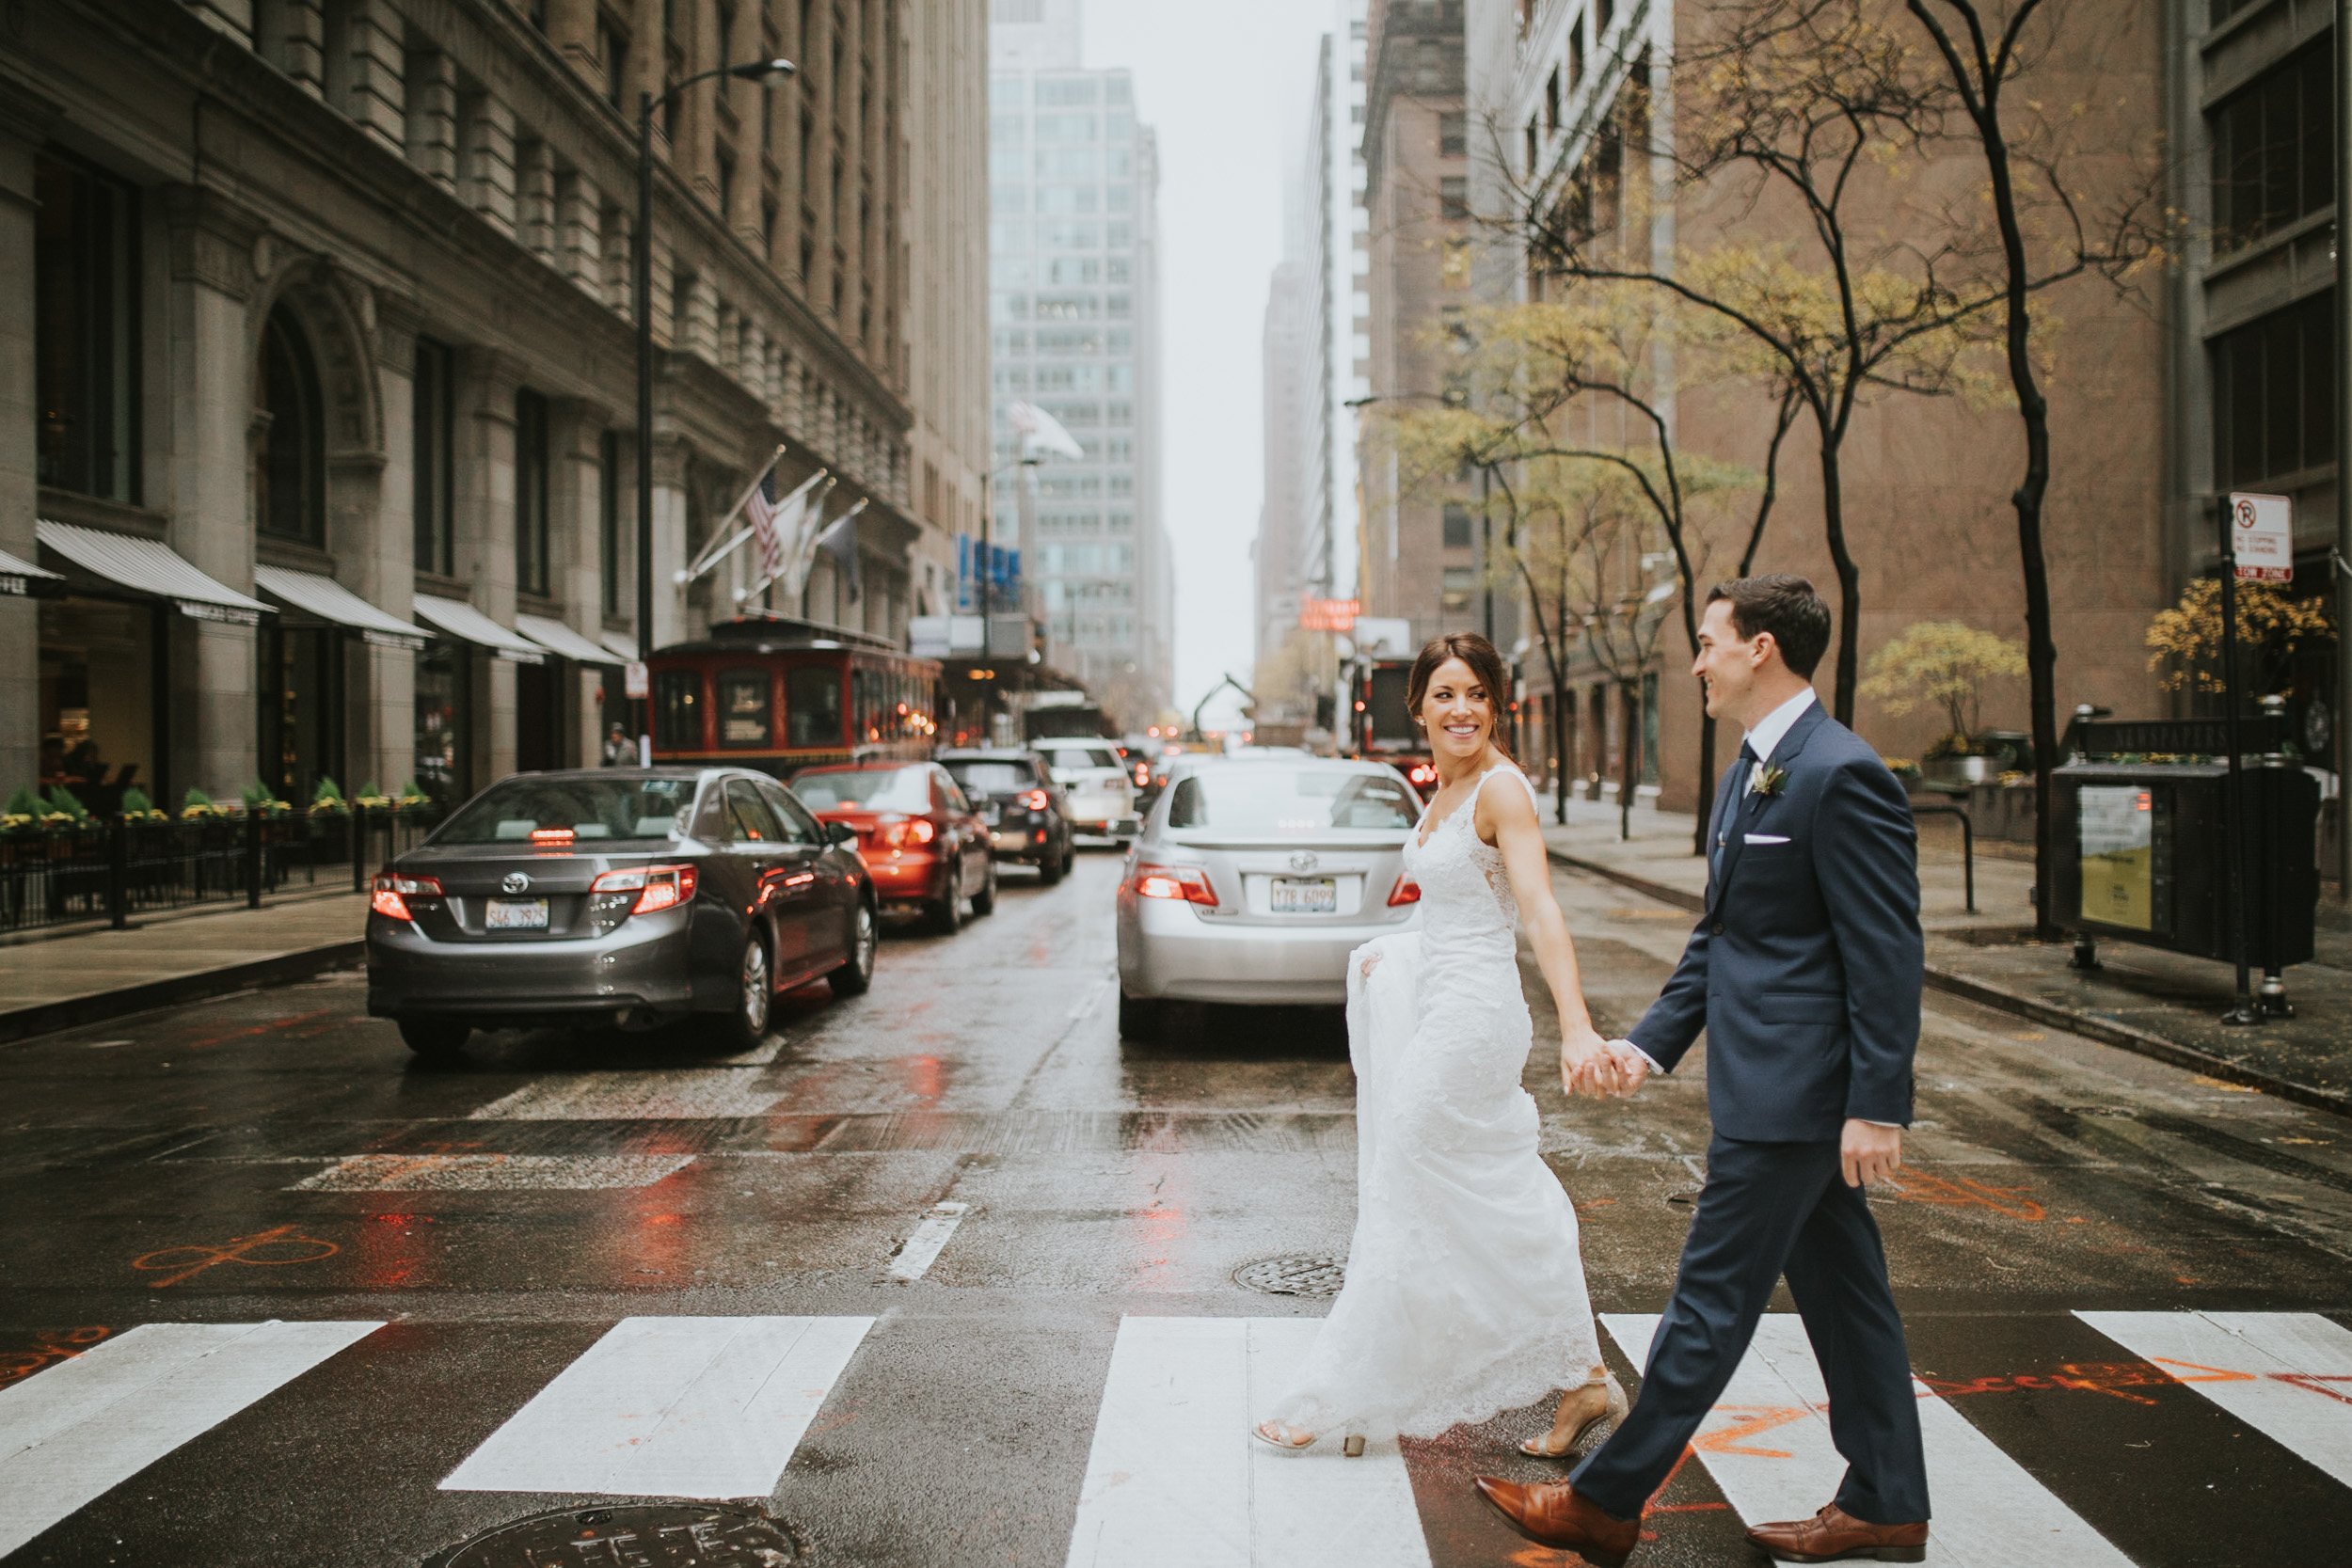 HaroldWashingtonLibraryWedding_Polly C Photography 1704142329.jpg